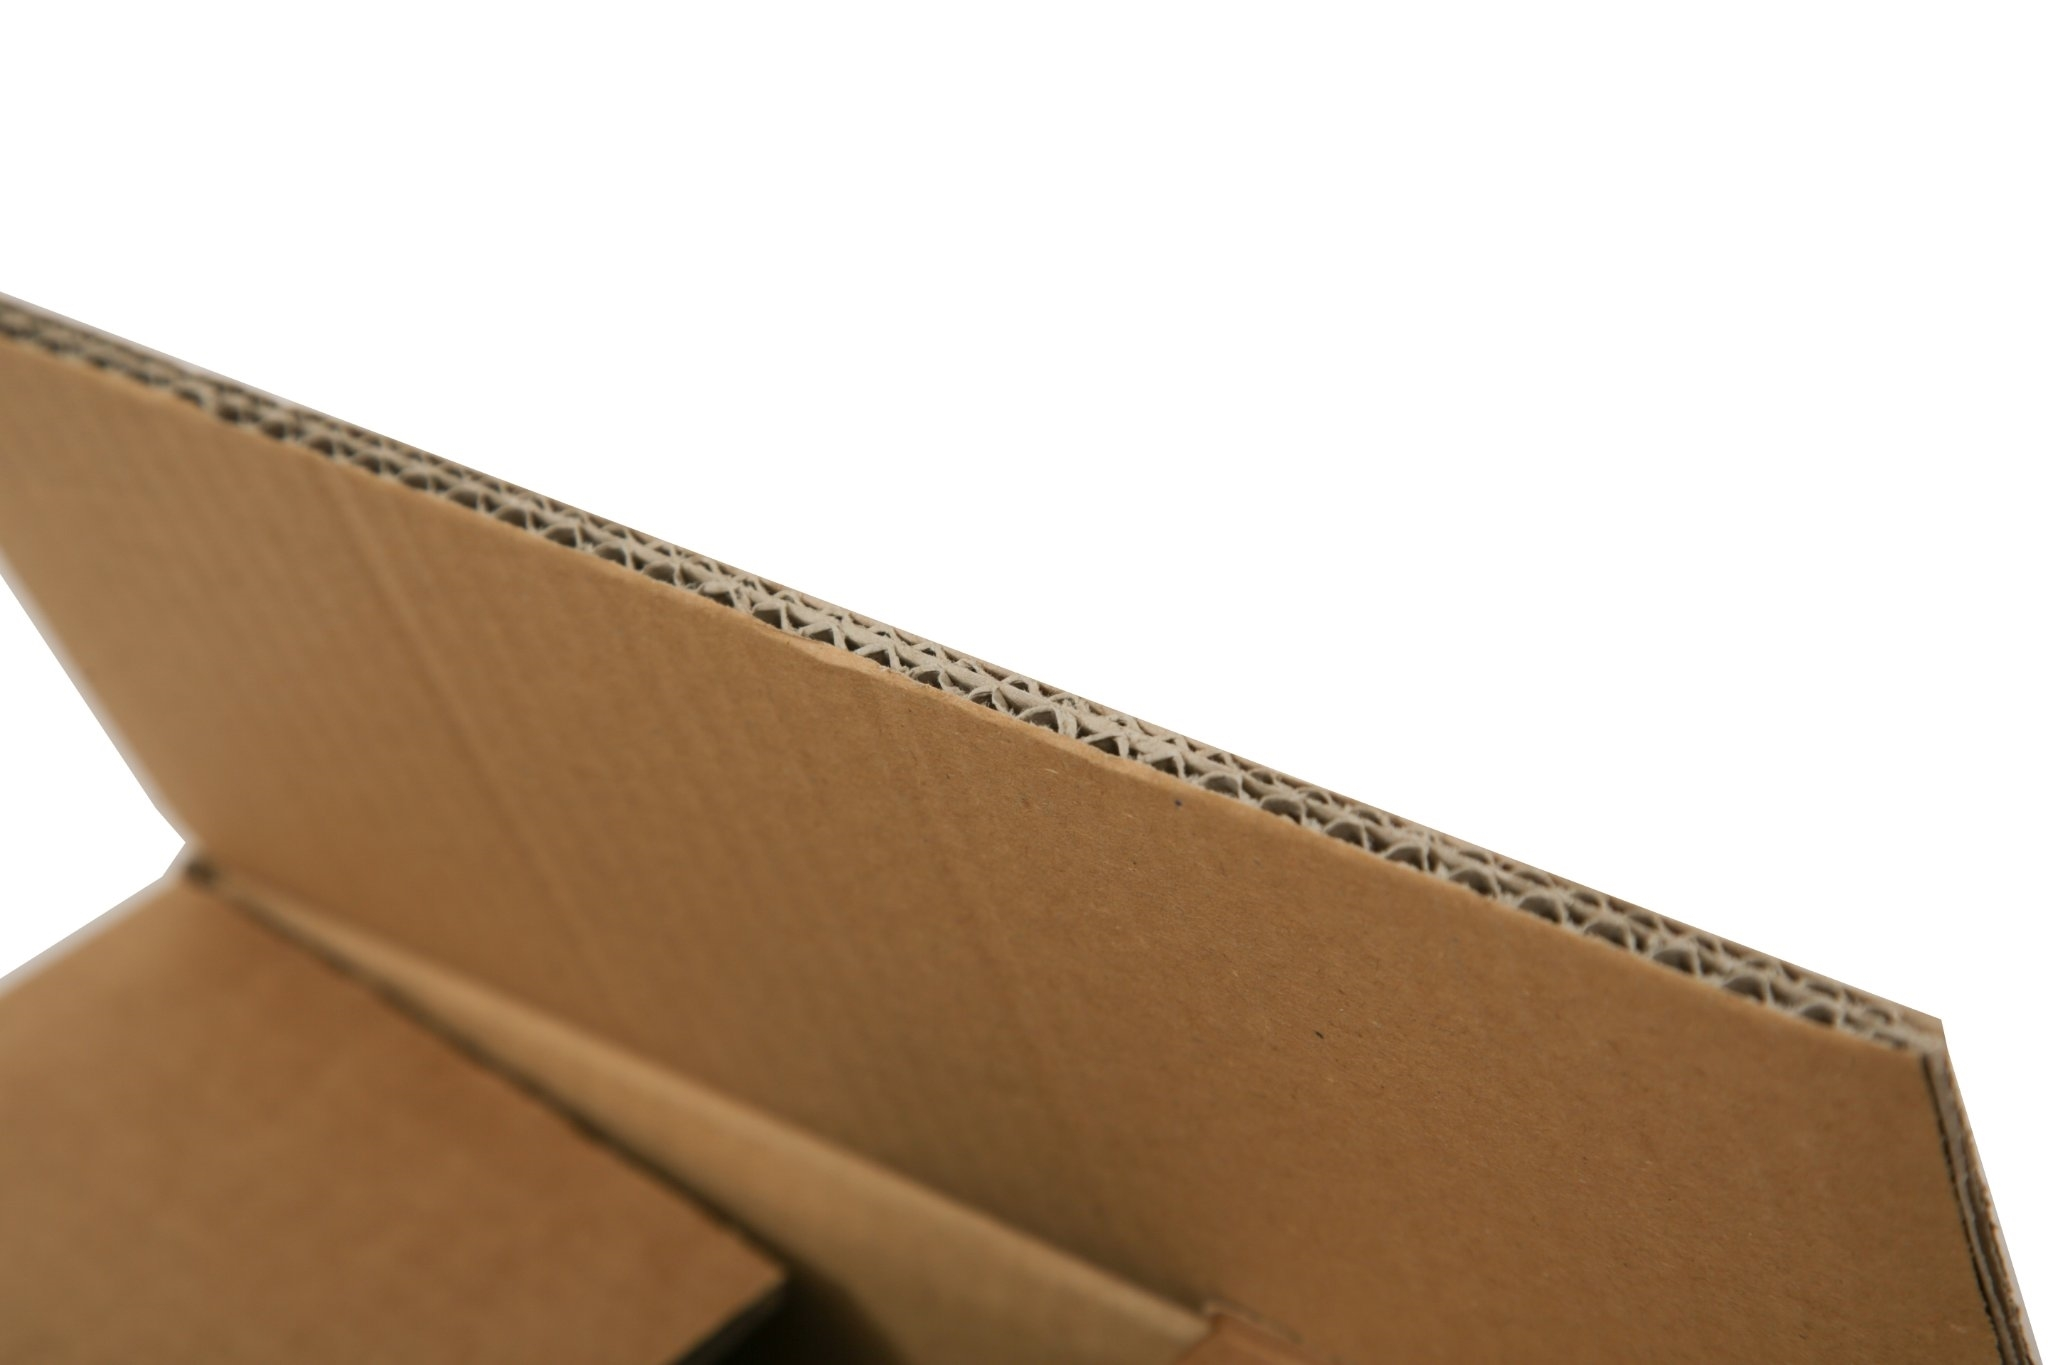 440 x 340 x 140mm Double Wall Cardboard Boxes - 5